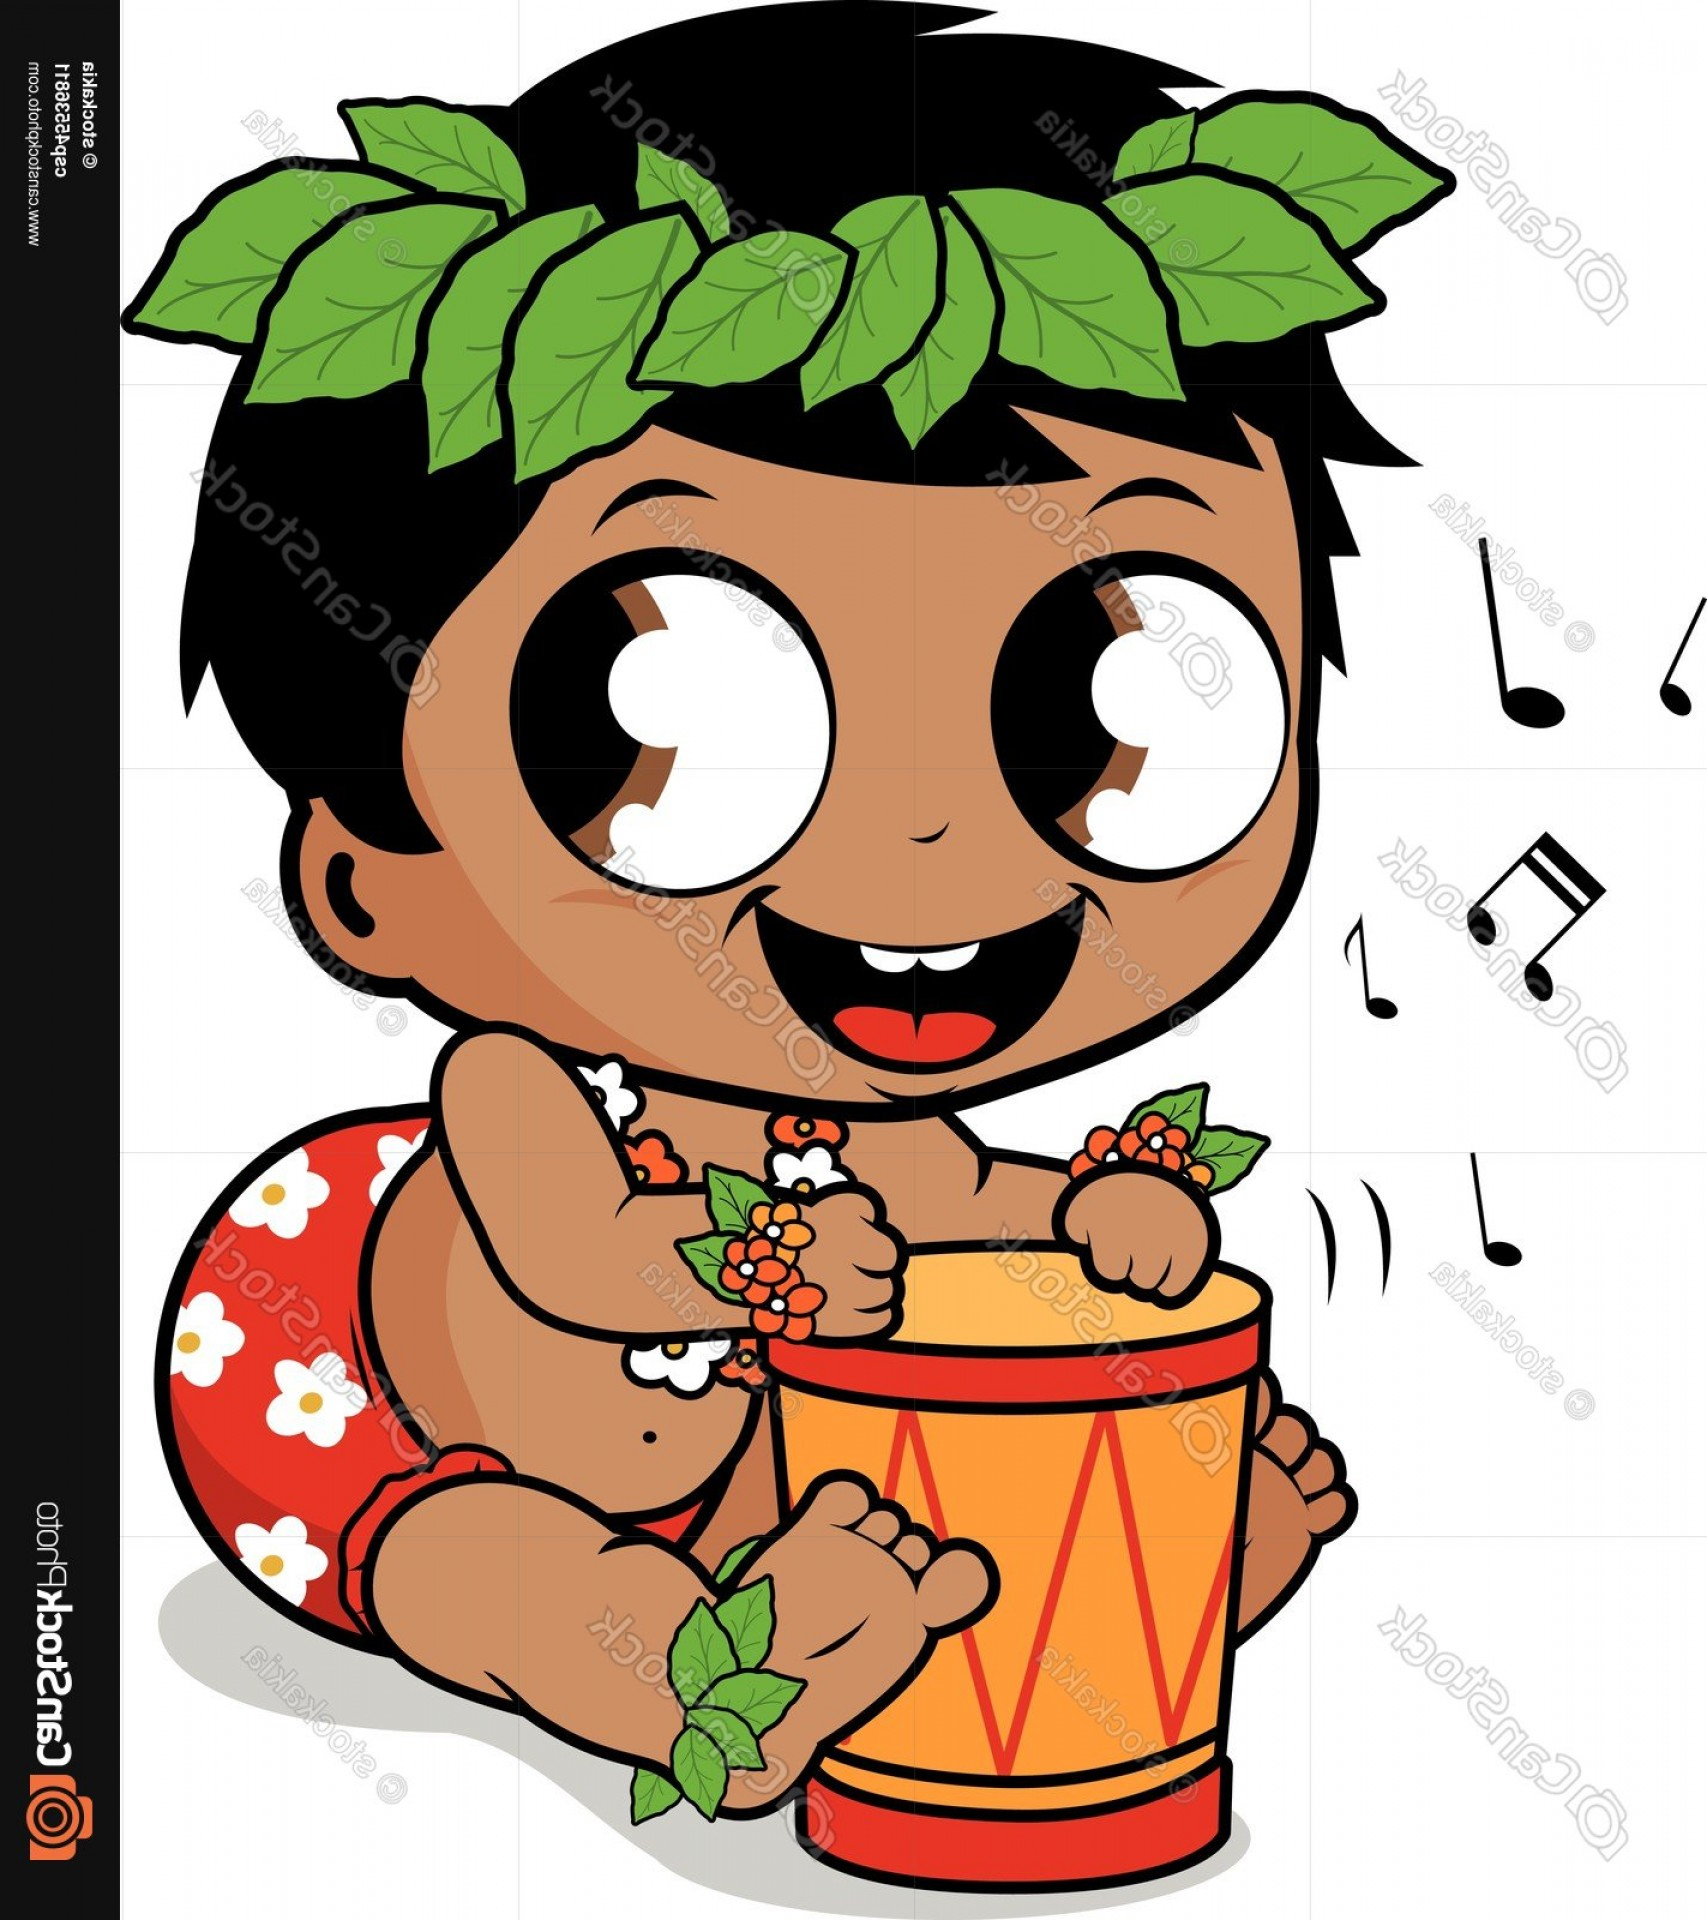 Drum Vector Art: Hawaiian Baby Boy Playing Music With The